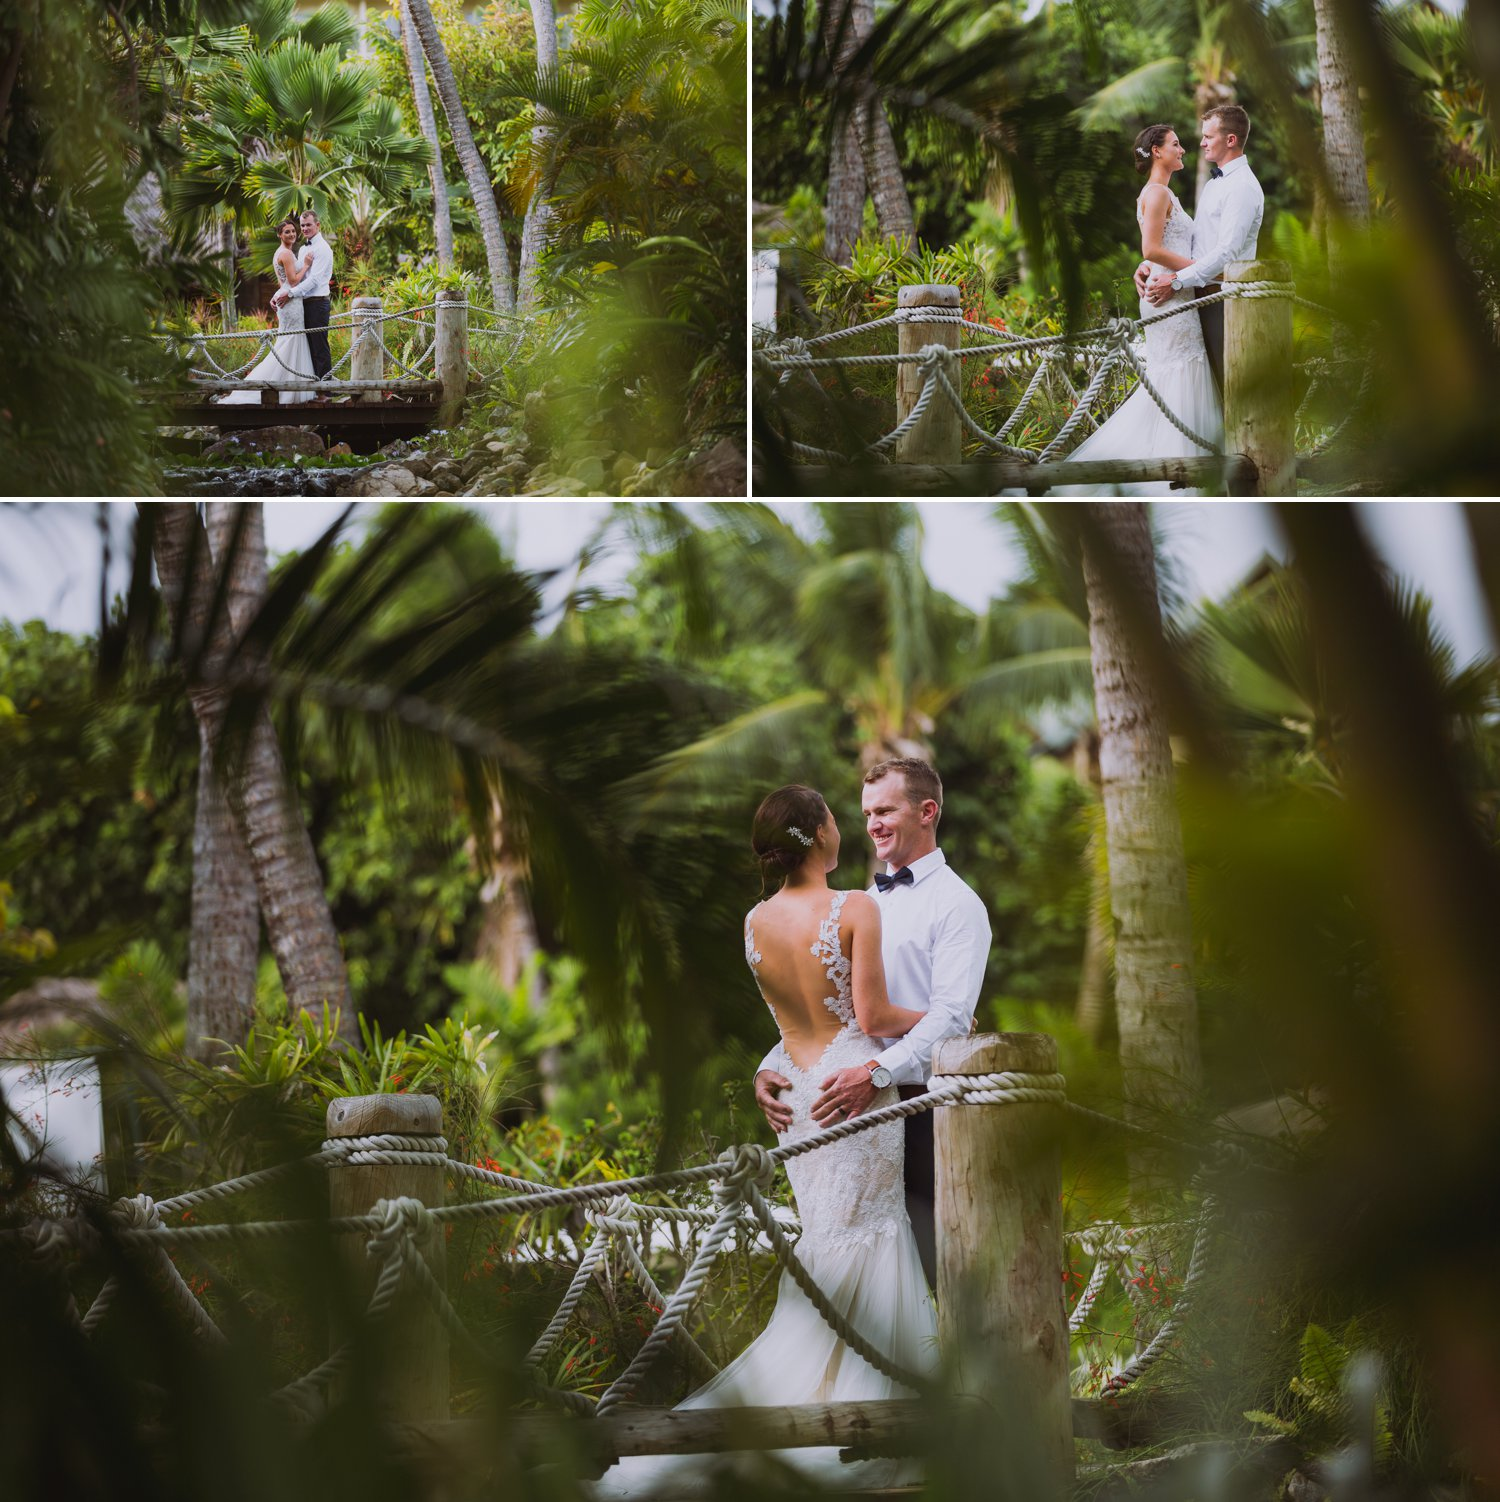 Outrigger Fiji Wedding Photography 23.jpg